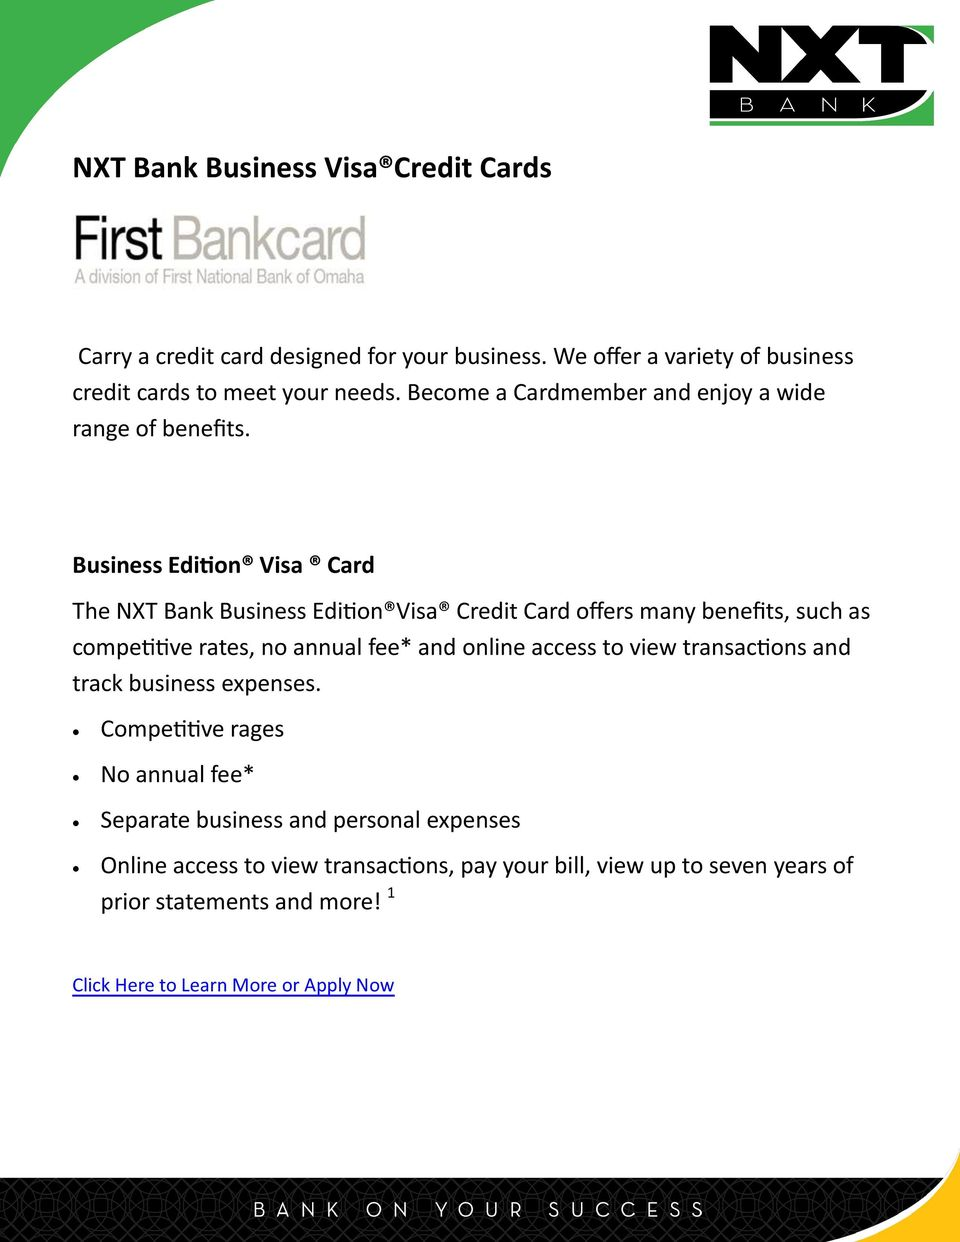 Business Edition Visa Card The NXT Bank Business Edition Visa Credit Card offers many benefits, such as competitive rates, no annual fee* and